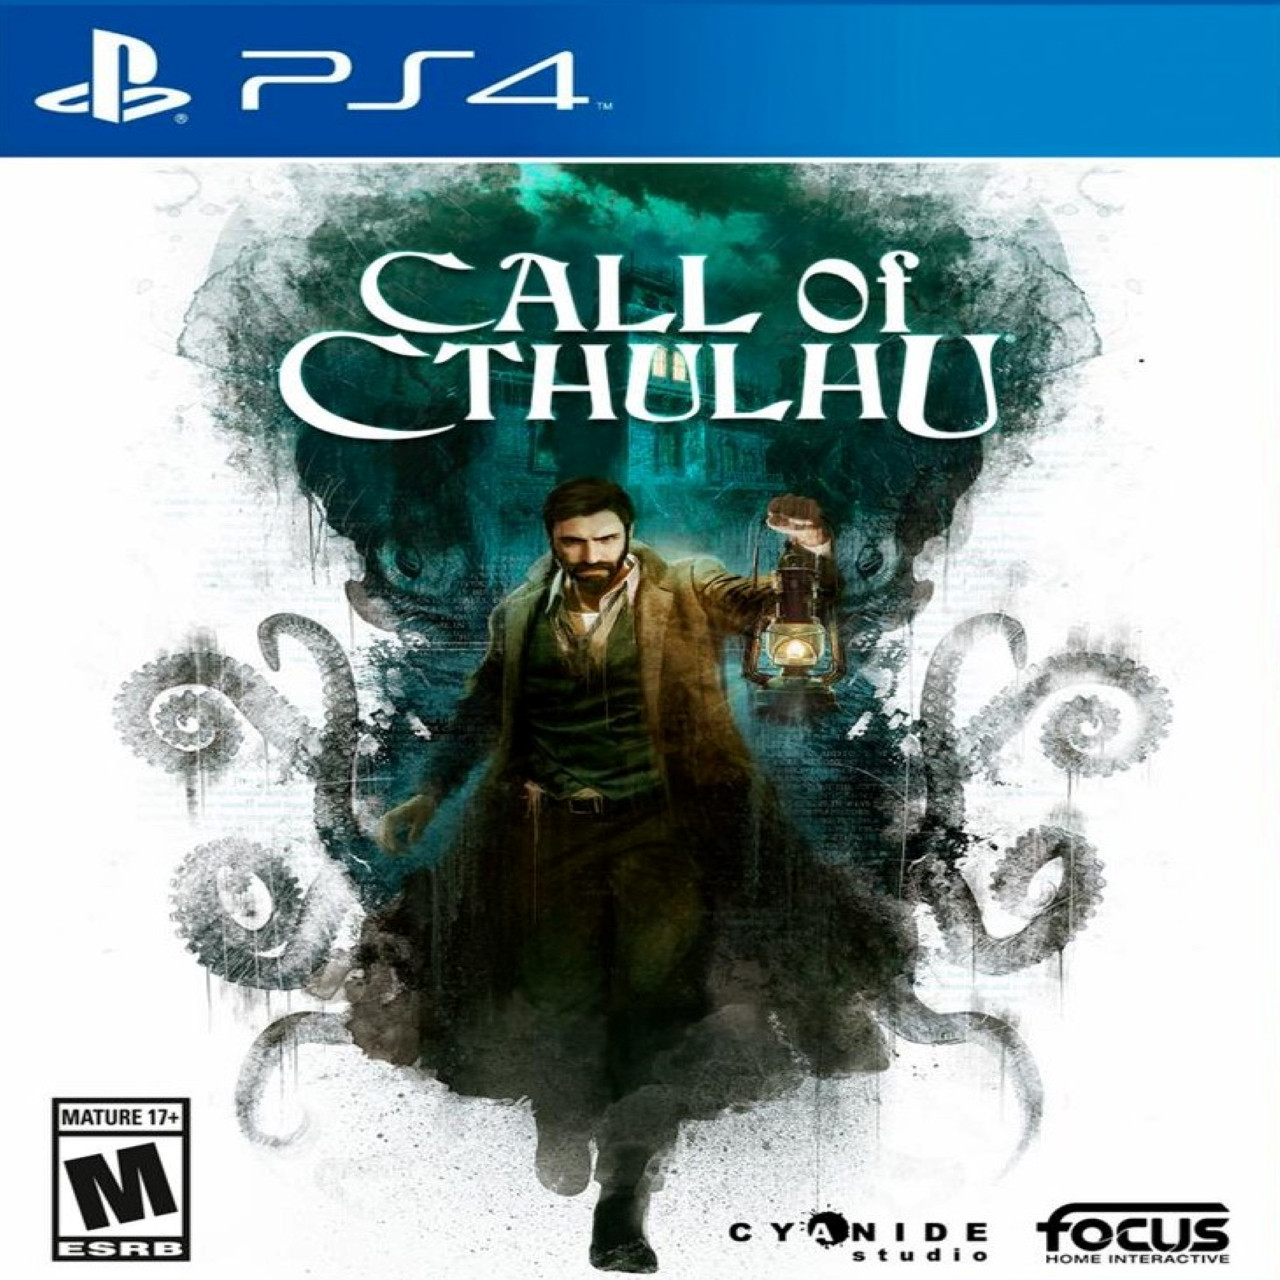 Call of Cthulhu SUB PS4 (NEW)